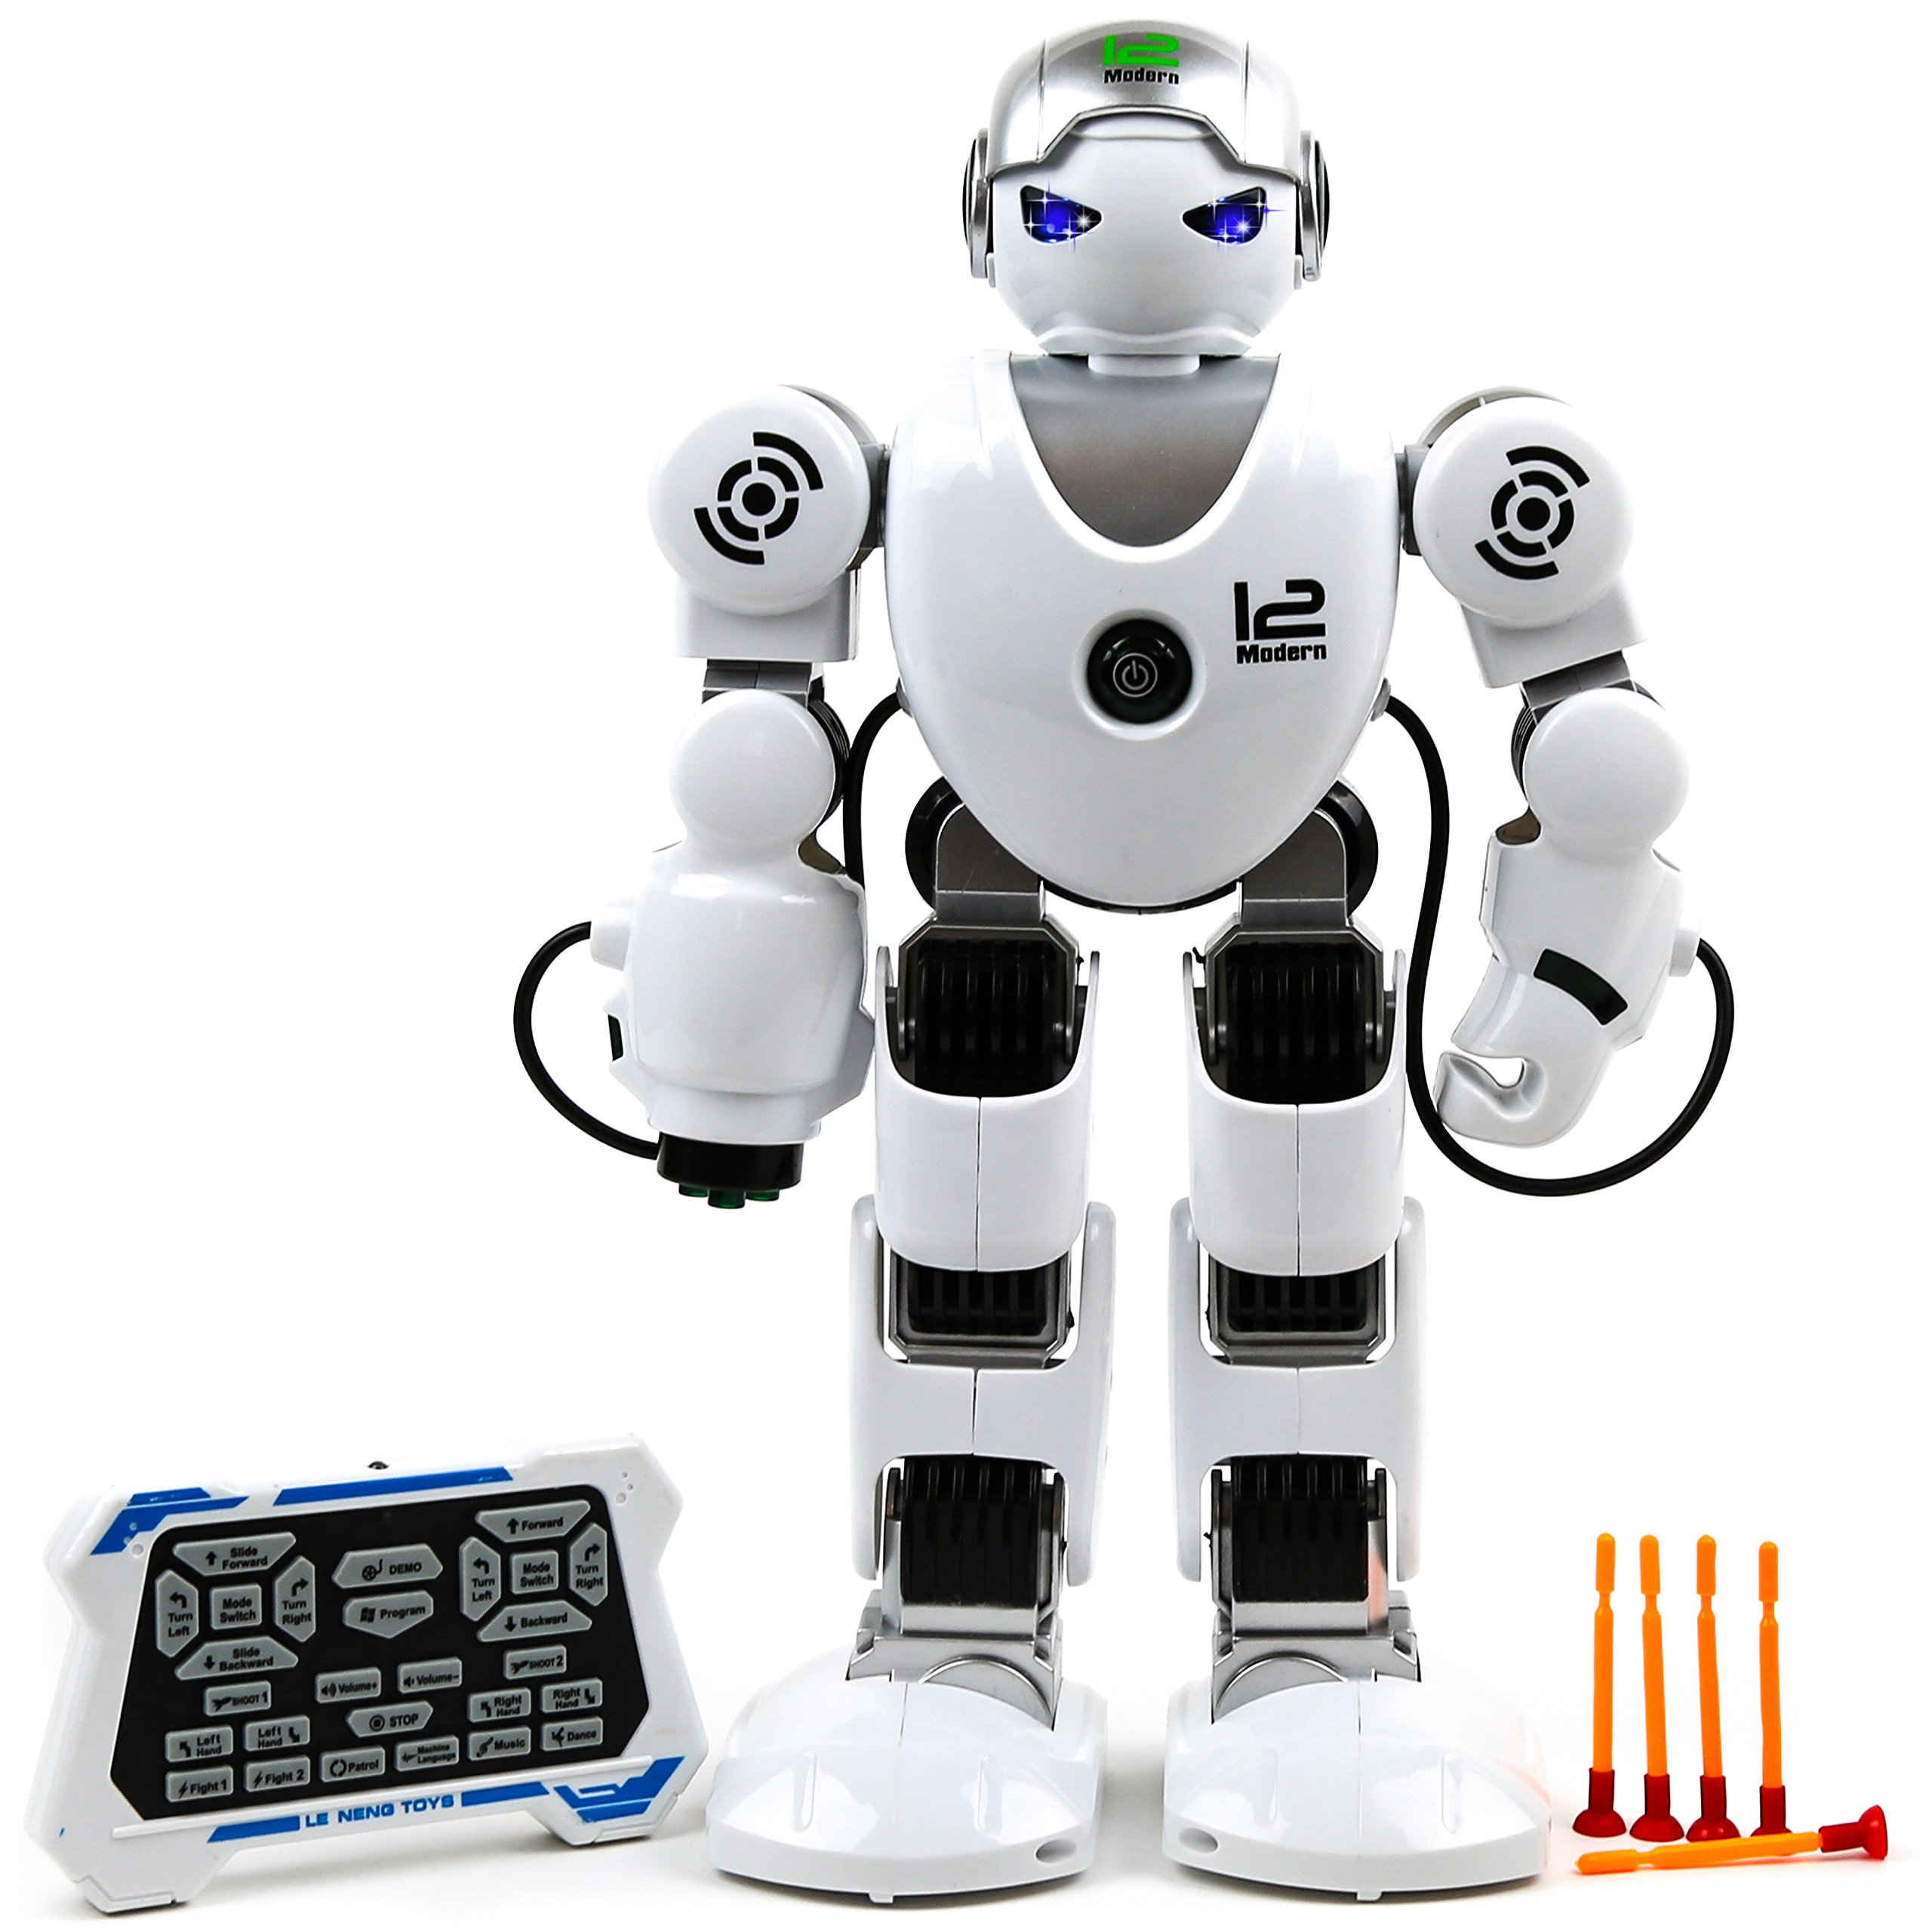 Toysery Remote Control Robot Toy For Kids - RC Robot Toy with Colorful LED Flashing Lights and Walking Shoot Music Dance Arm-swing - Powered by Built-in USB Rechargeable Battery by Toysery (Image #1)